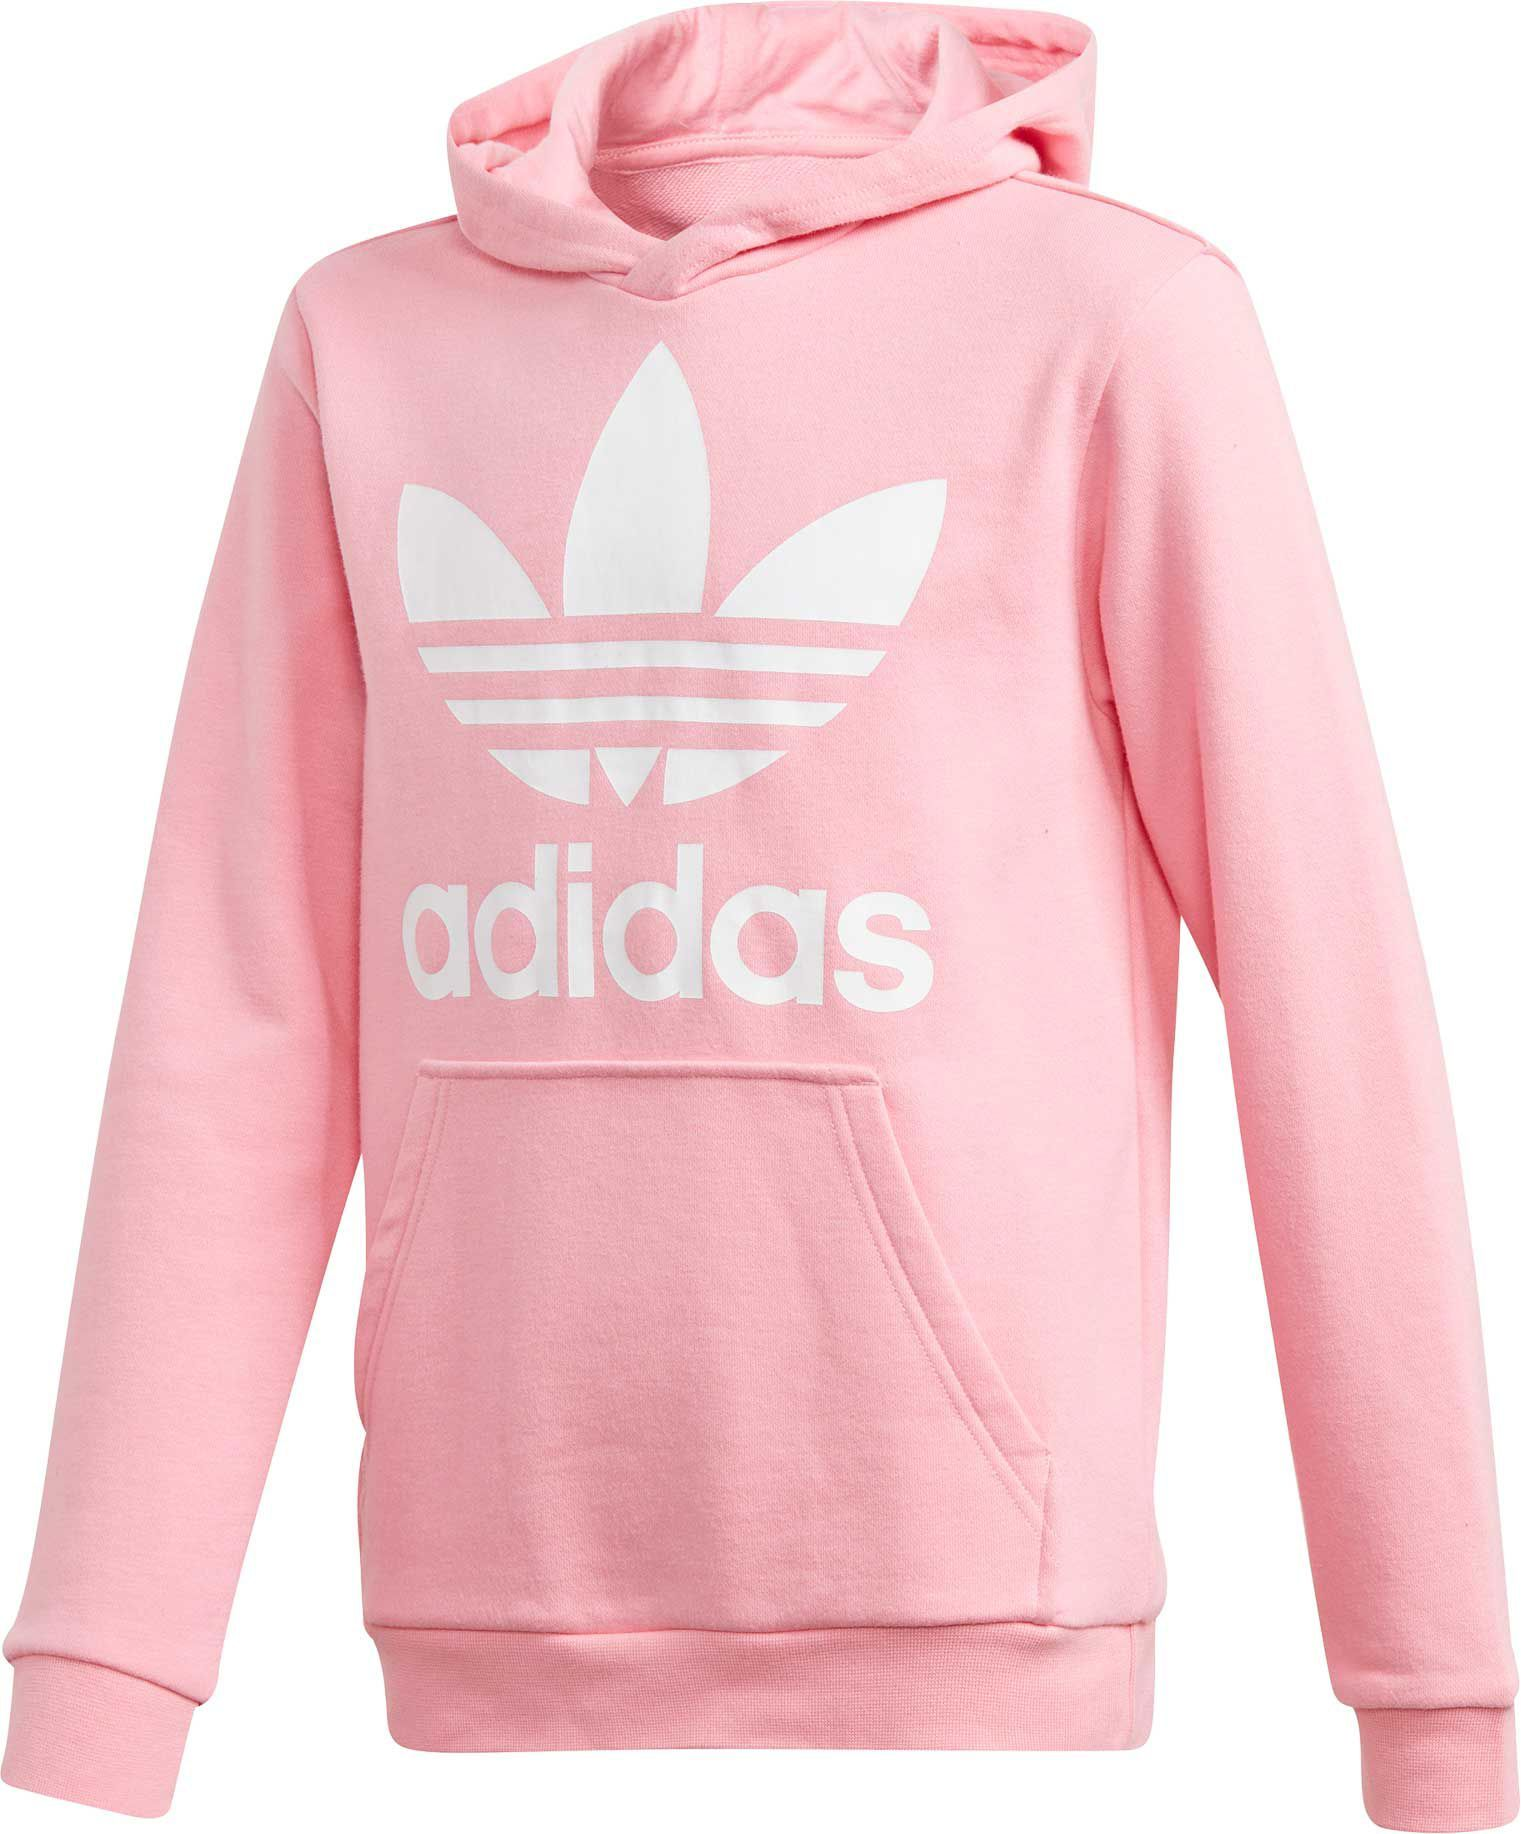 adidas Originals Girls' Trefoil Hoodie, Light PinkWhite in